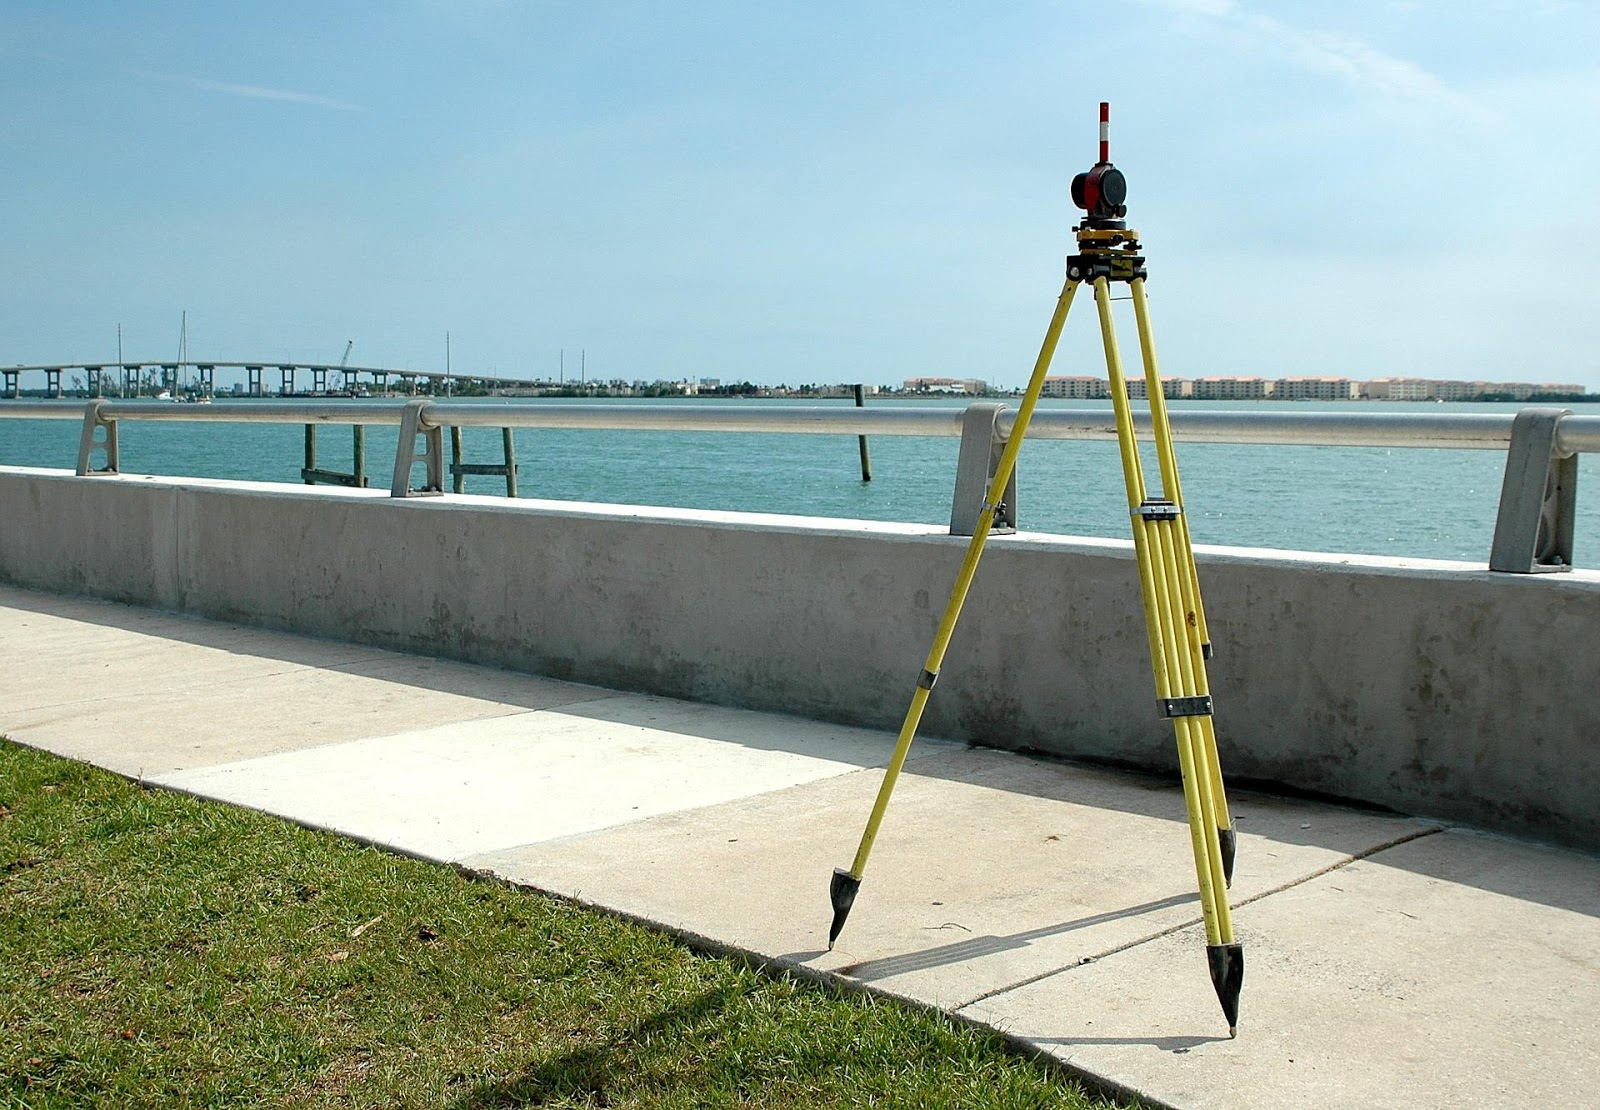 Equipment used for land surveying